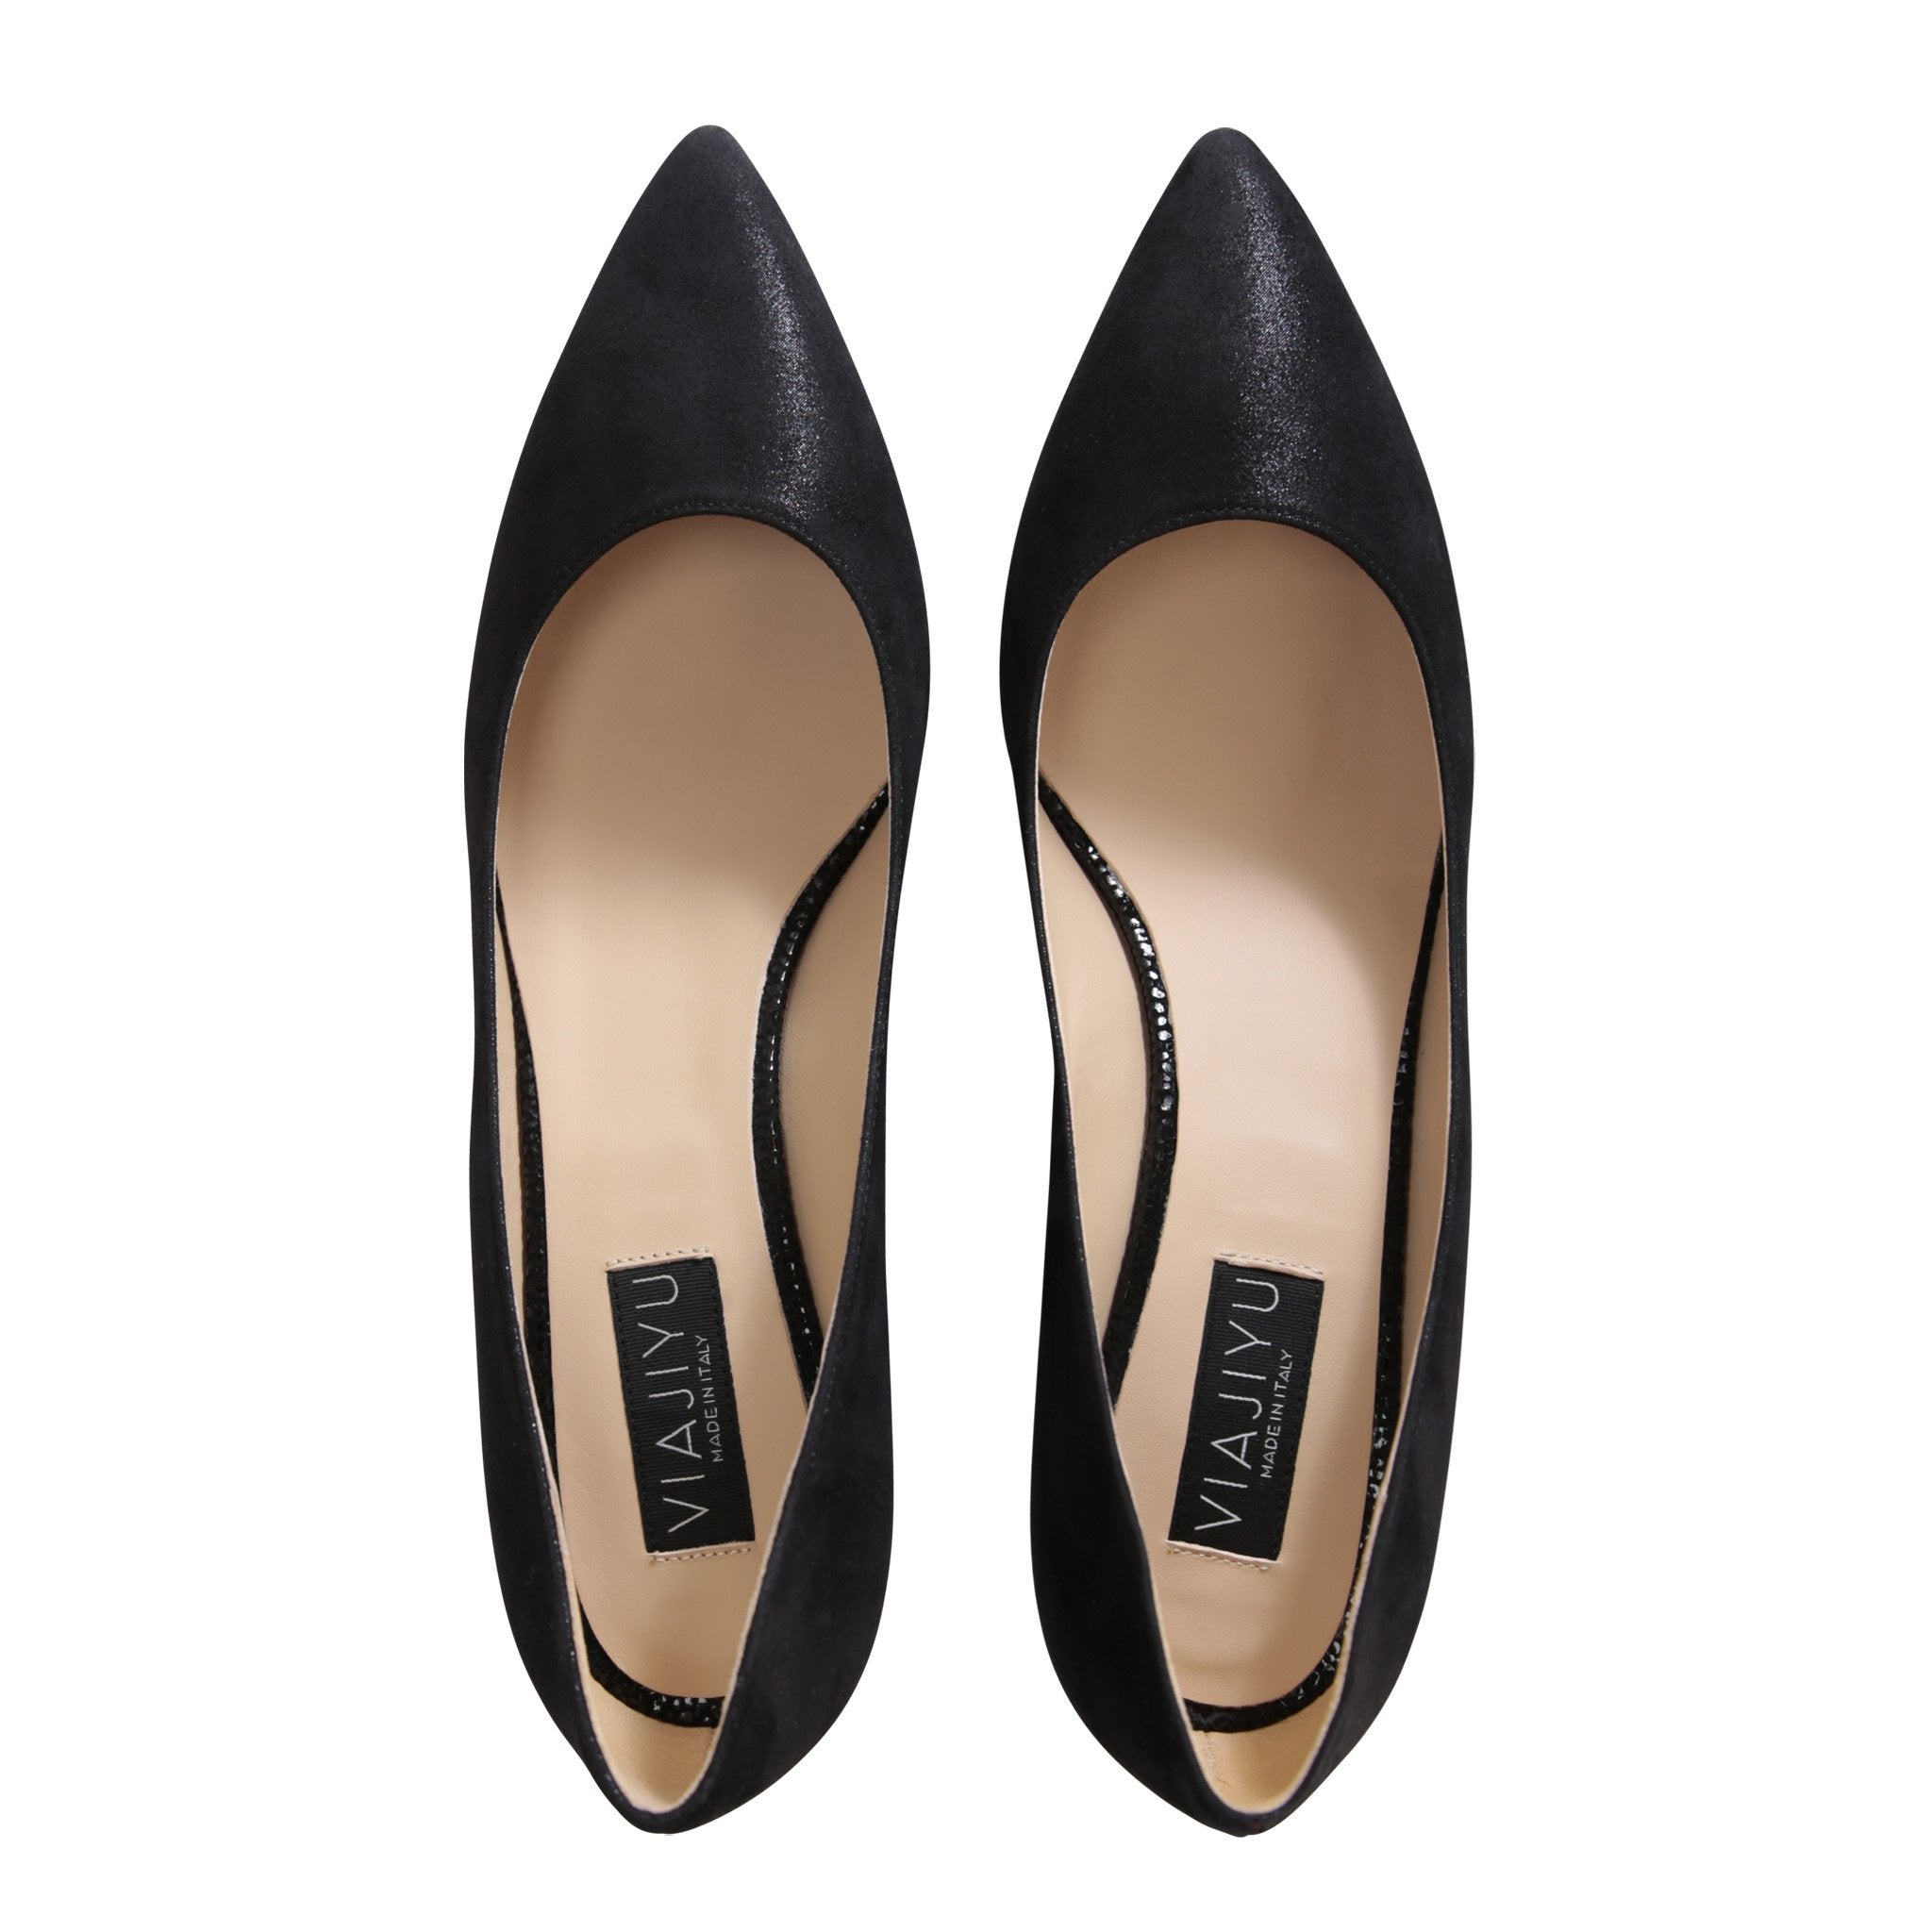 TRENTO - Hydra + Savannah Nero, VIAJIYU - Women's Hand Made Sustainable Luxury Shoes. Made in Italy. Made to Order.